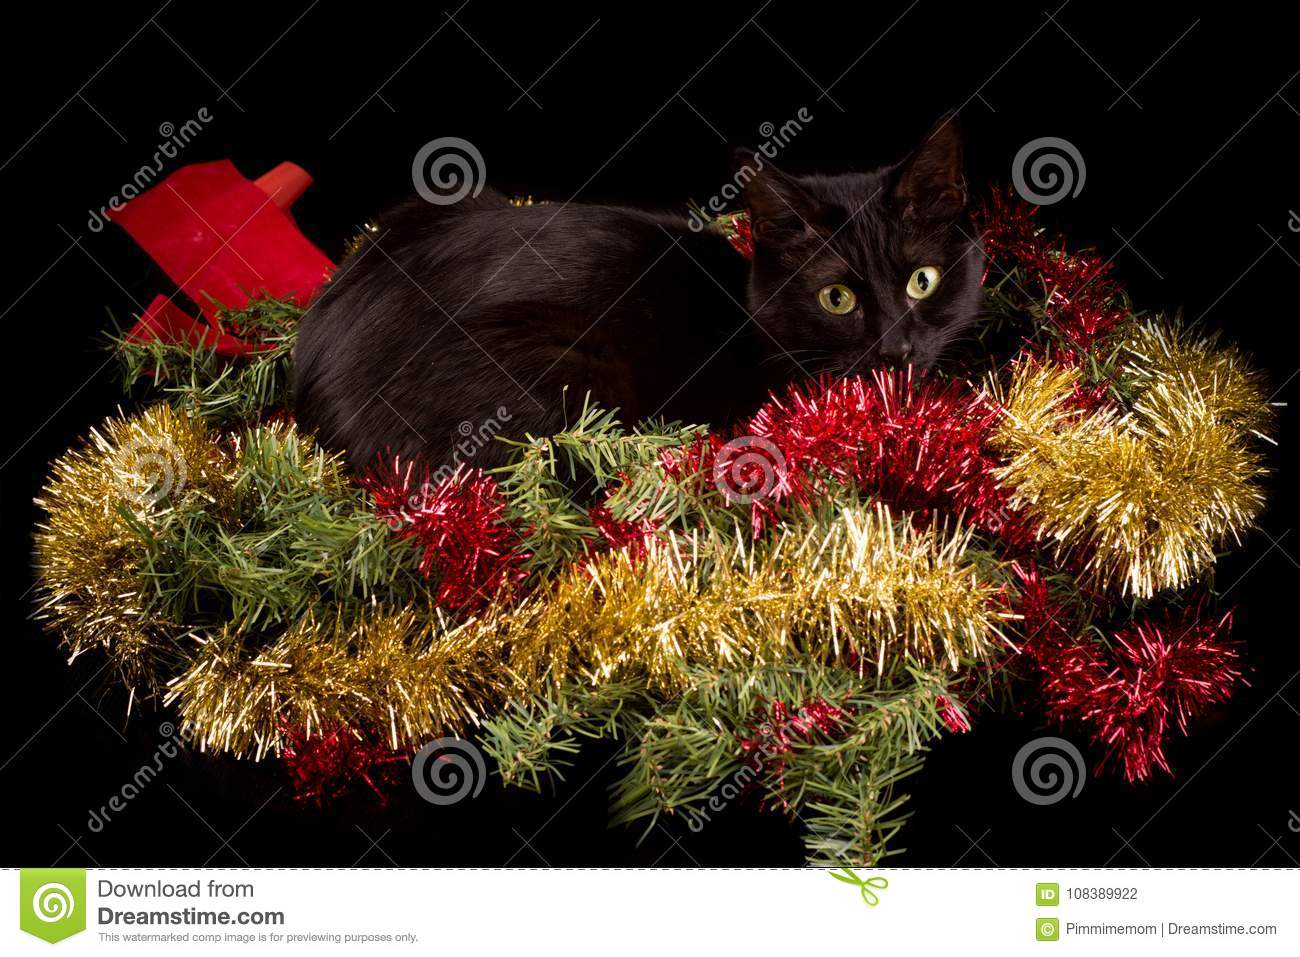 download black cat hiding in christmas decorations wreath with red and gold tinsel stock photo